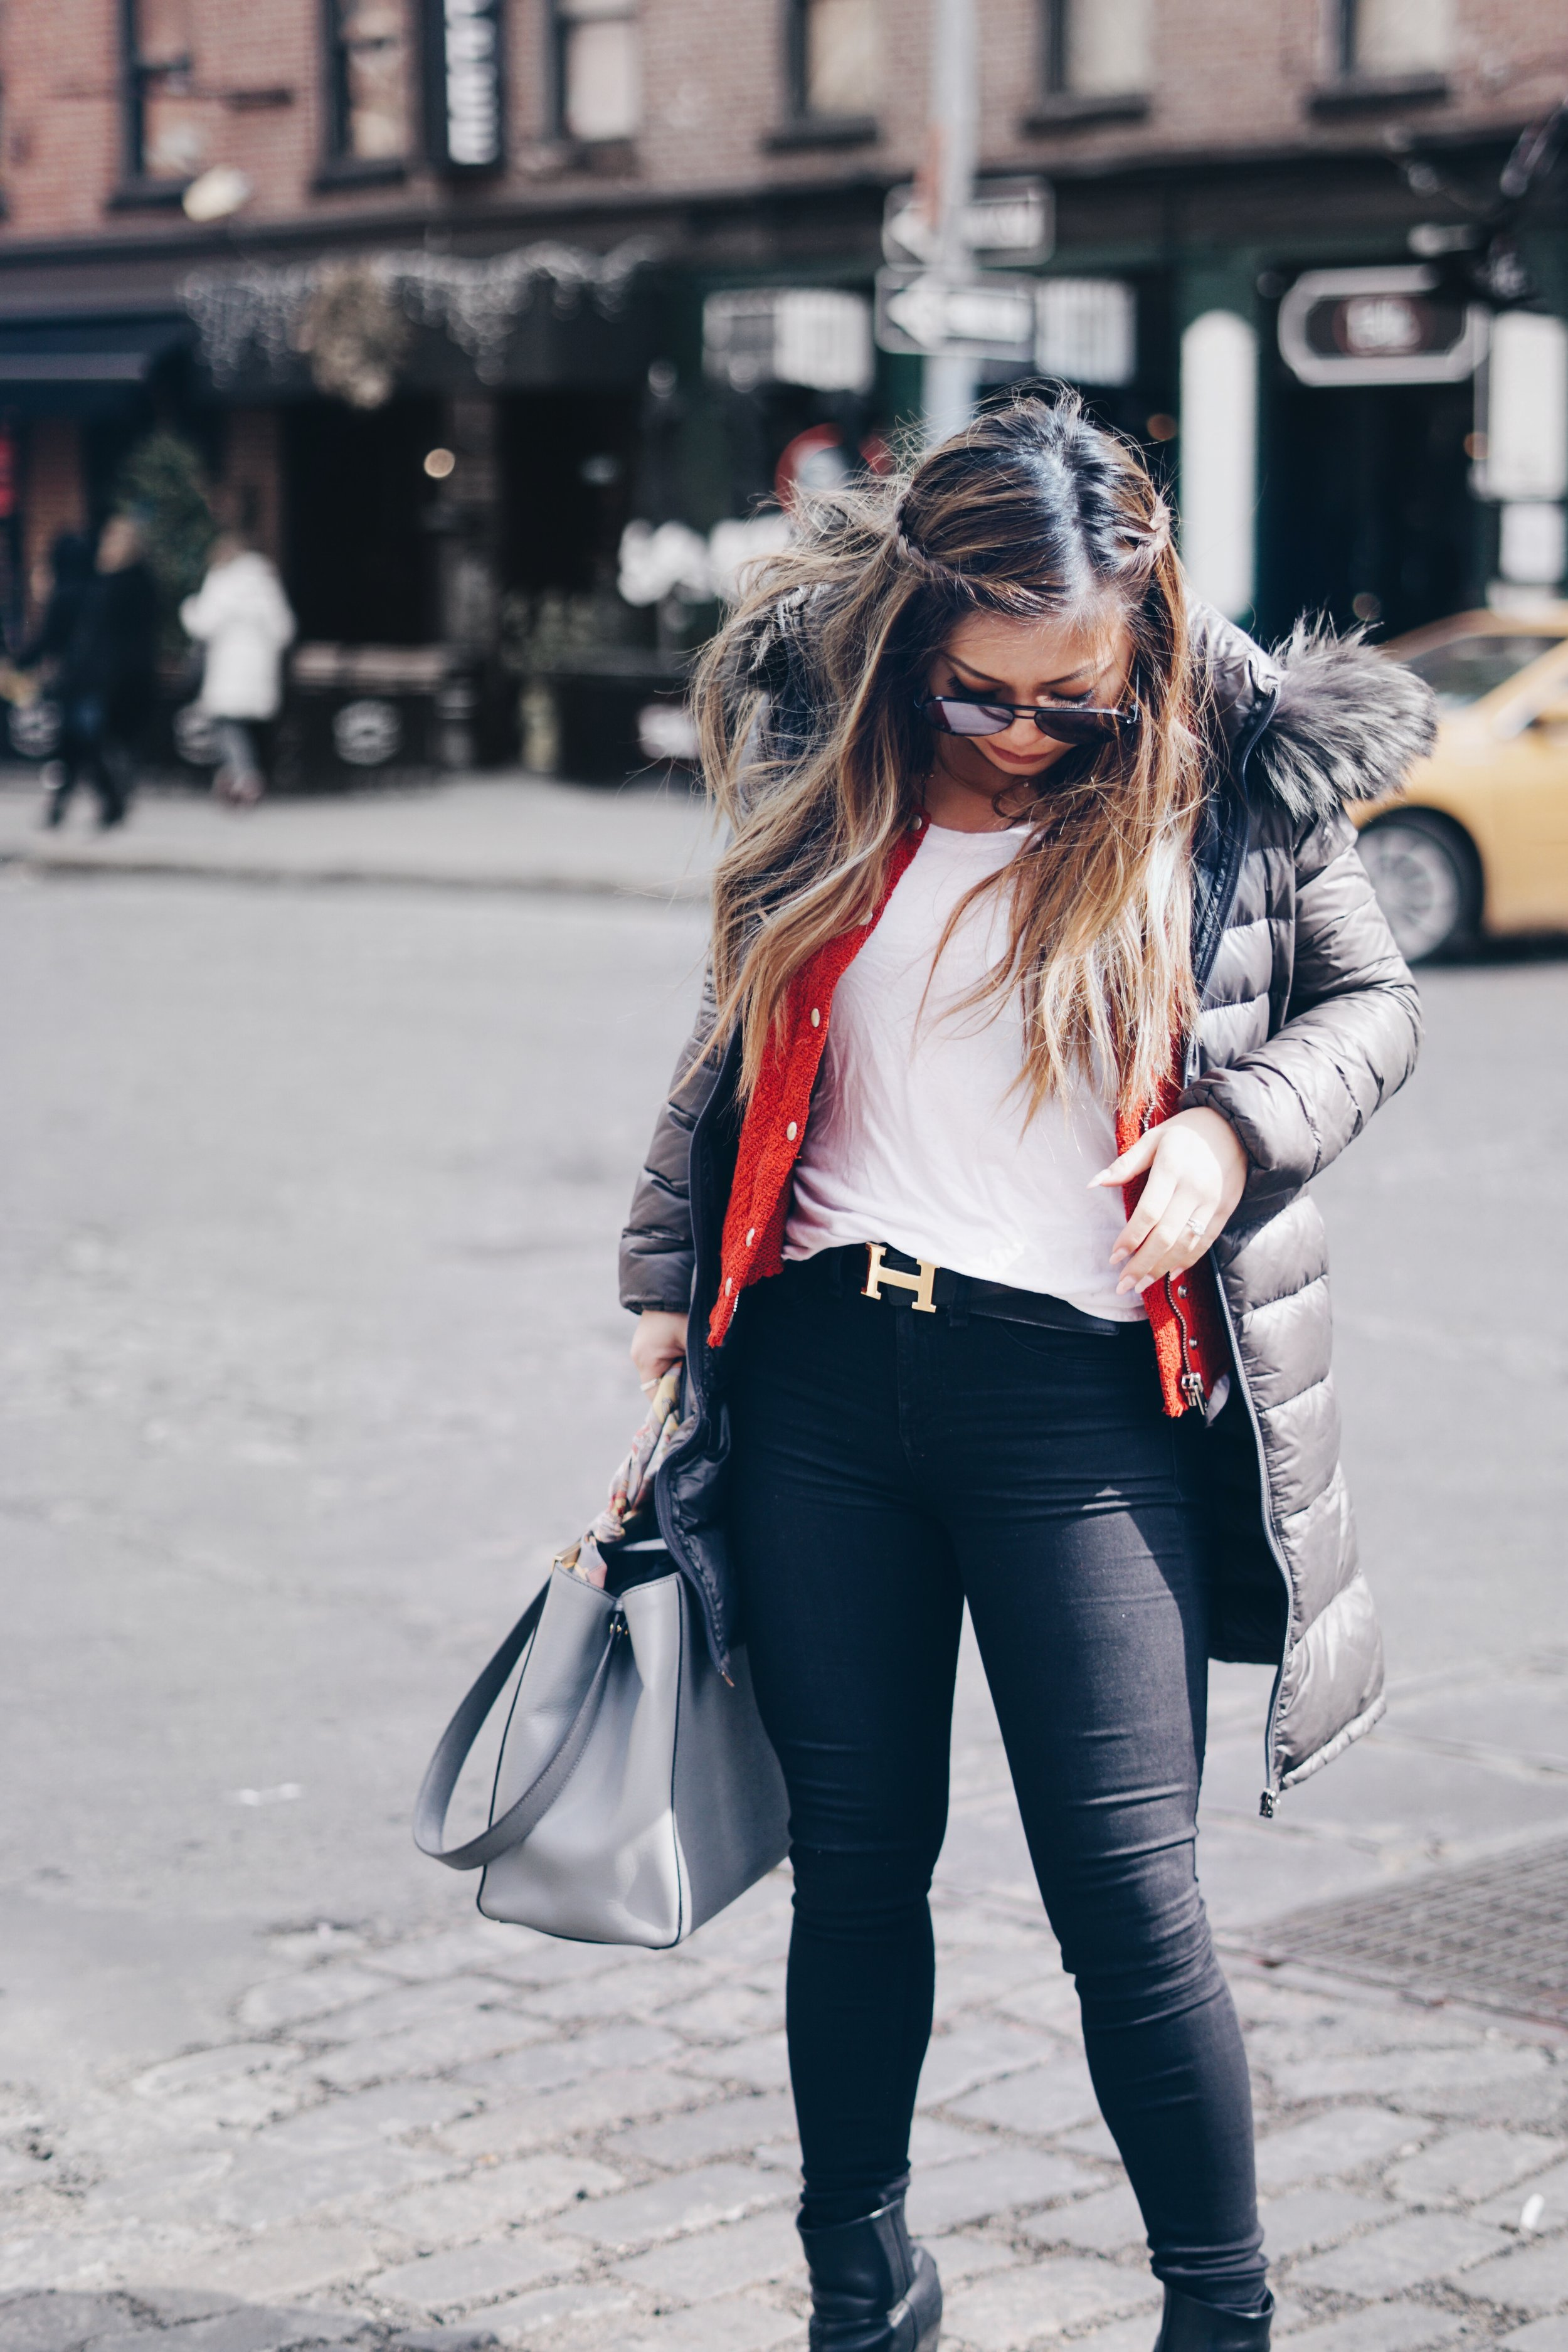 risa xu nyc petite blogger outfit meatpacking